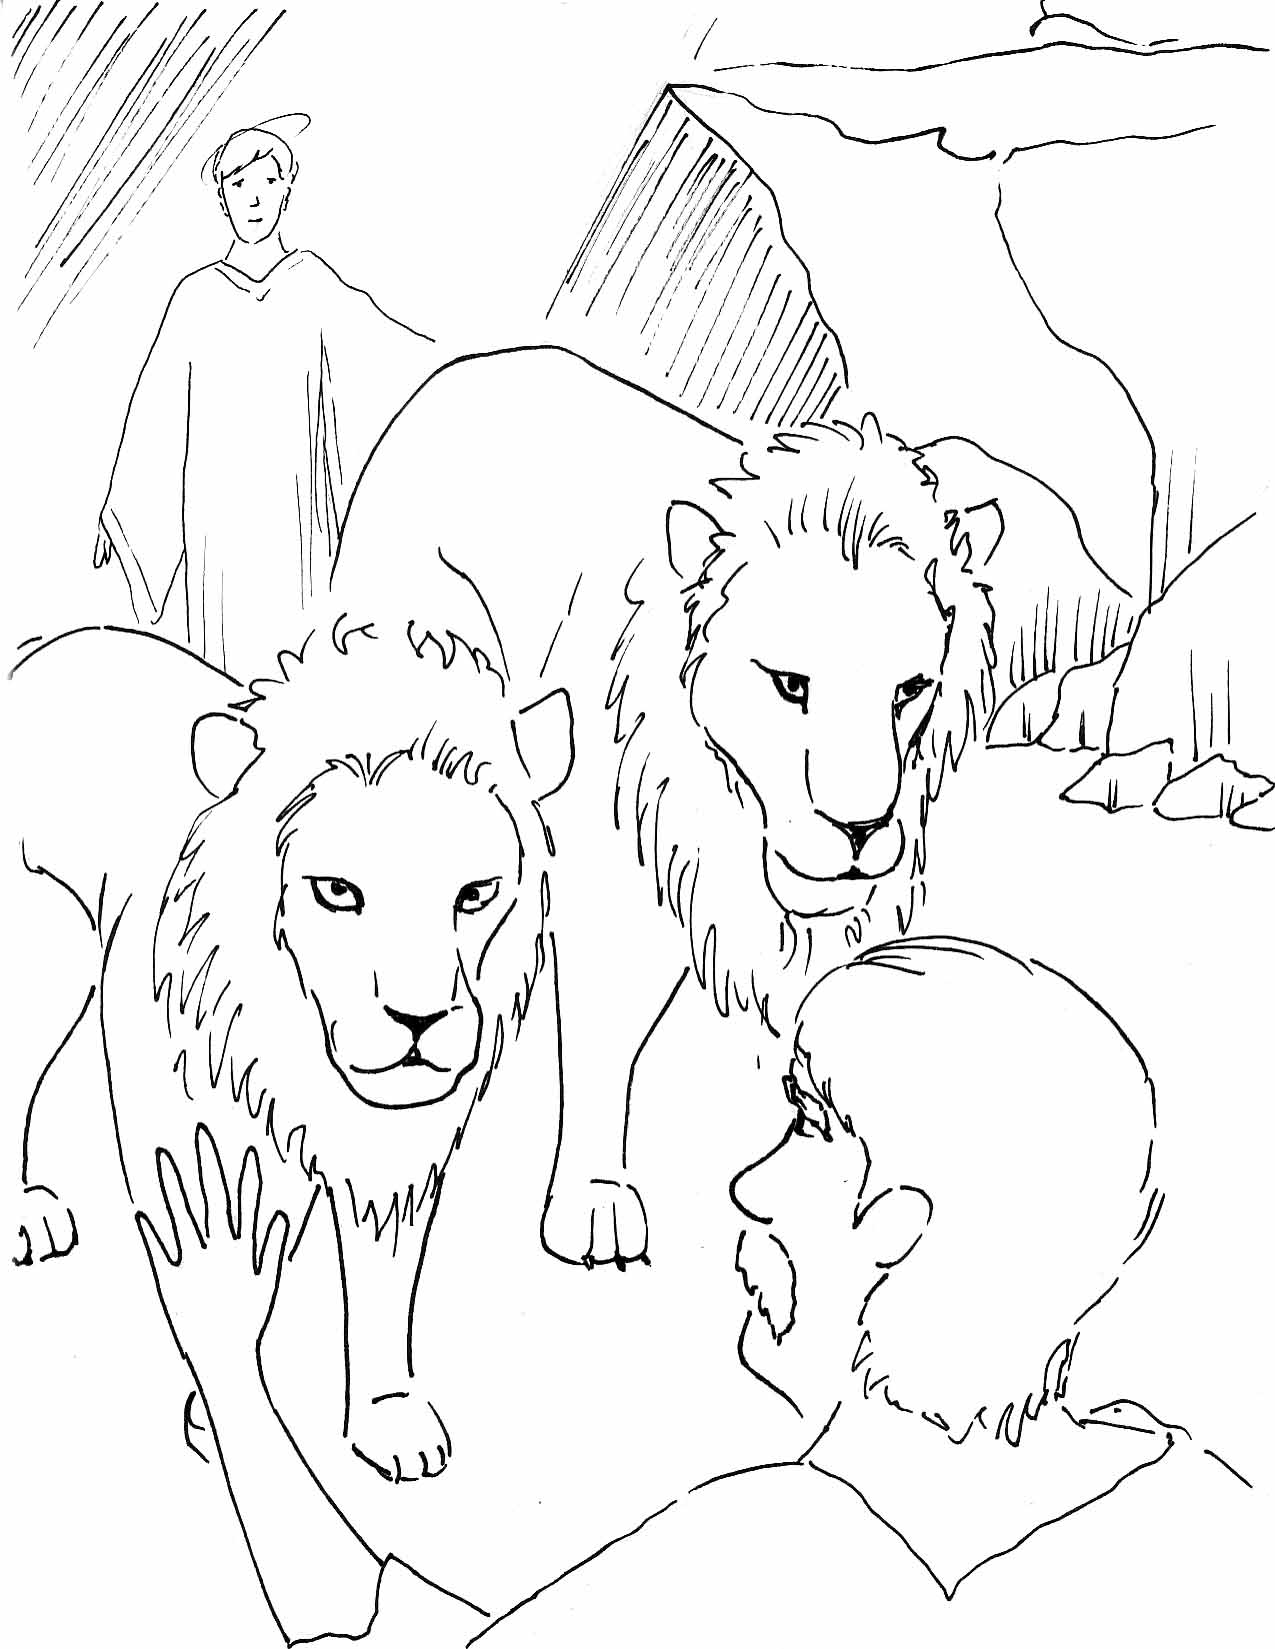 Daniel In The Lion Den Coloring Pages - Coloring Home